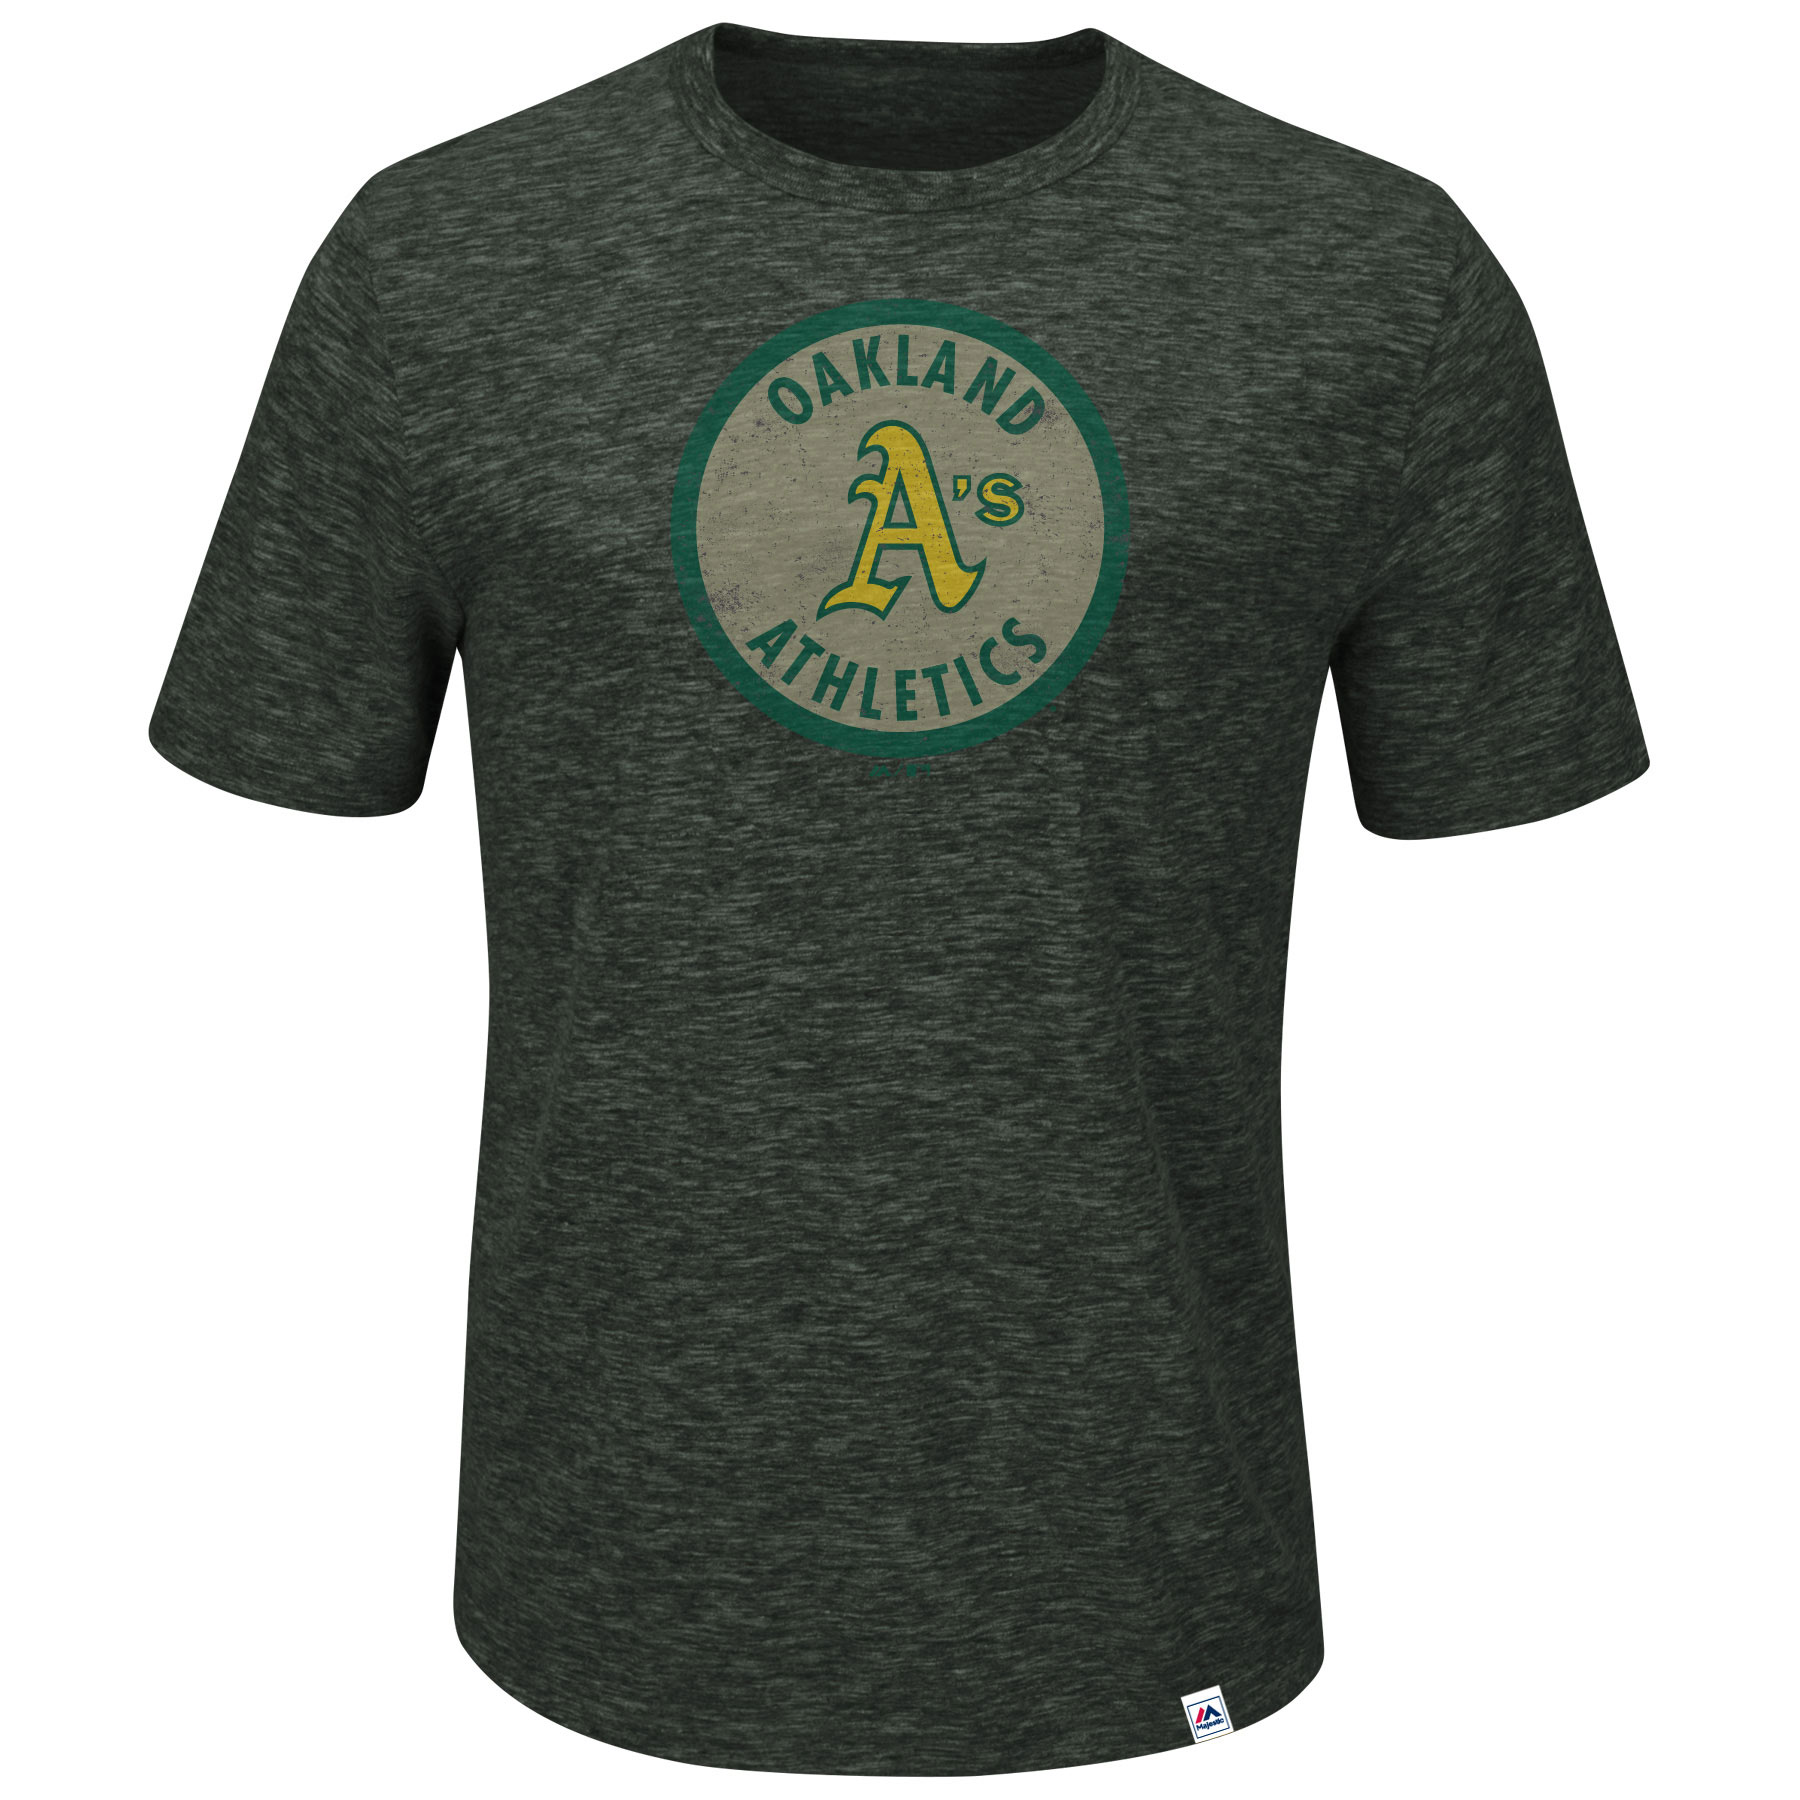 Oakland Athletics Majestic Big & Tall Cooperstown Collection Back in the Day T-Shirt - Charcoal - 2XLT